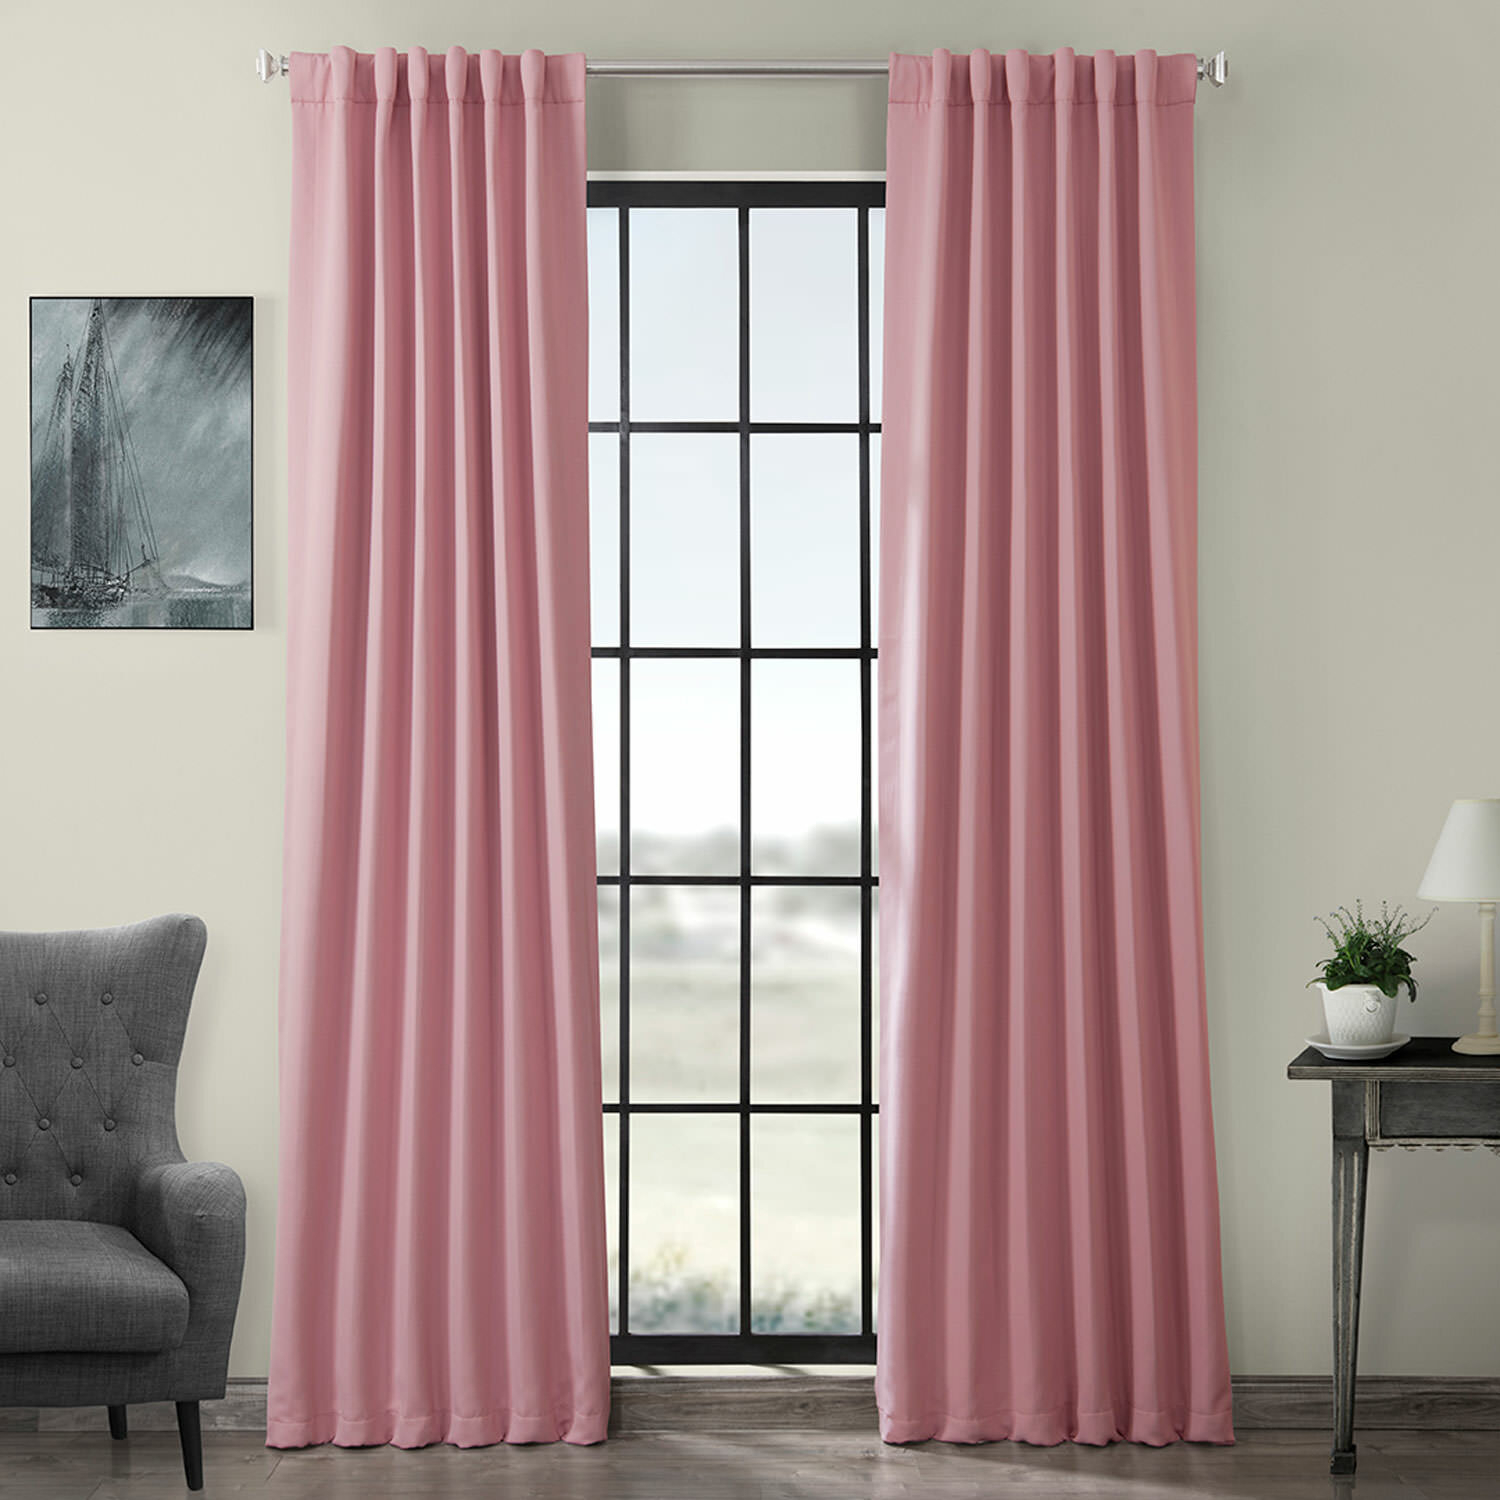 Destinie Indoor Solid Color Blackout Curtain Rod Pocket Panel Pair With Thermal Rod Pocket Blackout Curtain Panel Pairs (View 9 of 30)